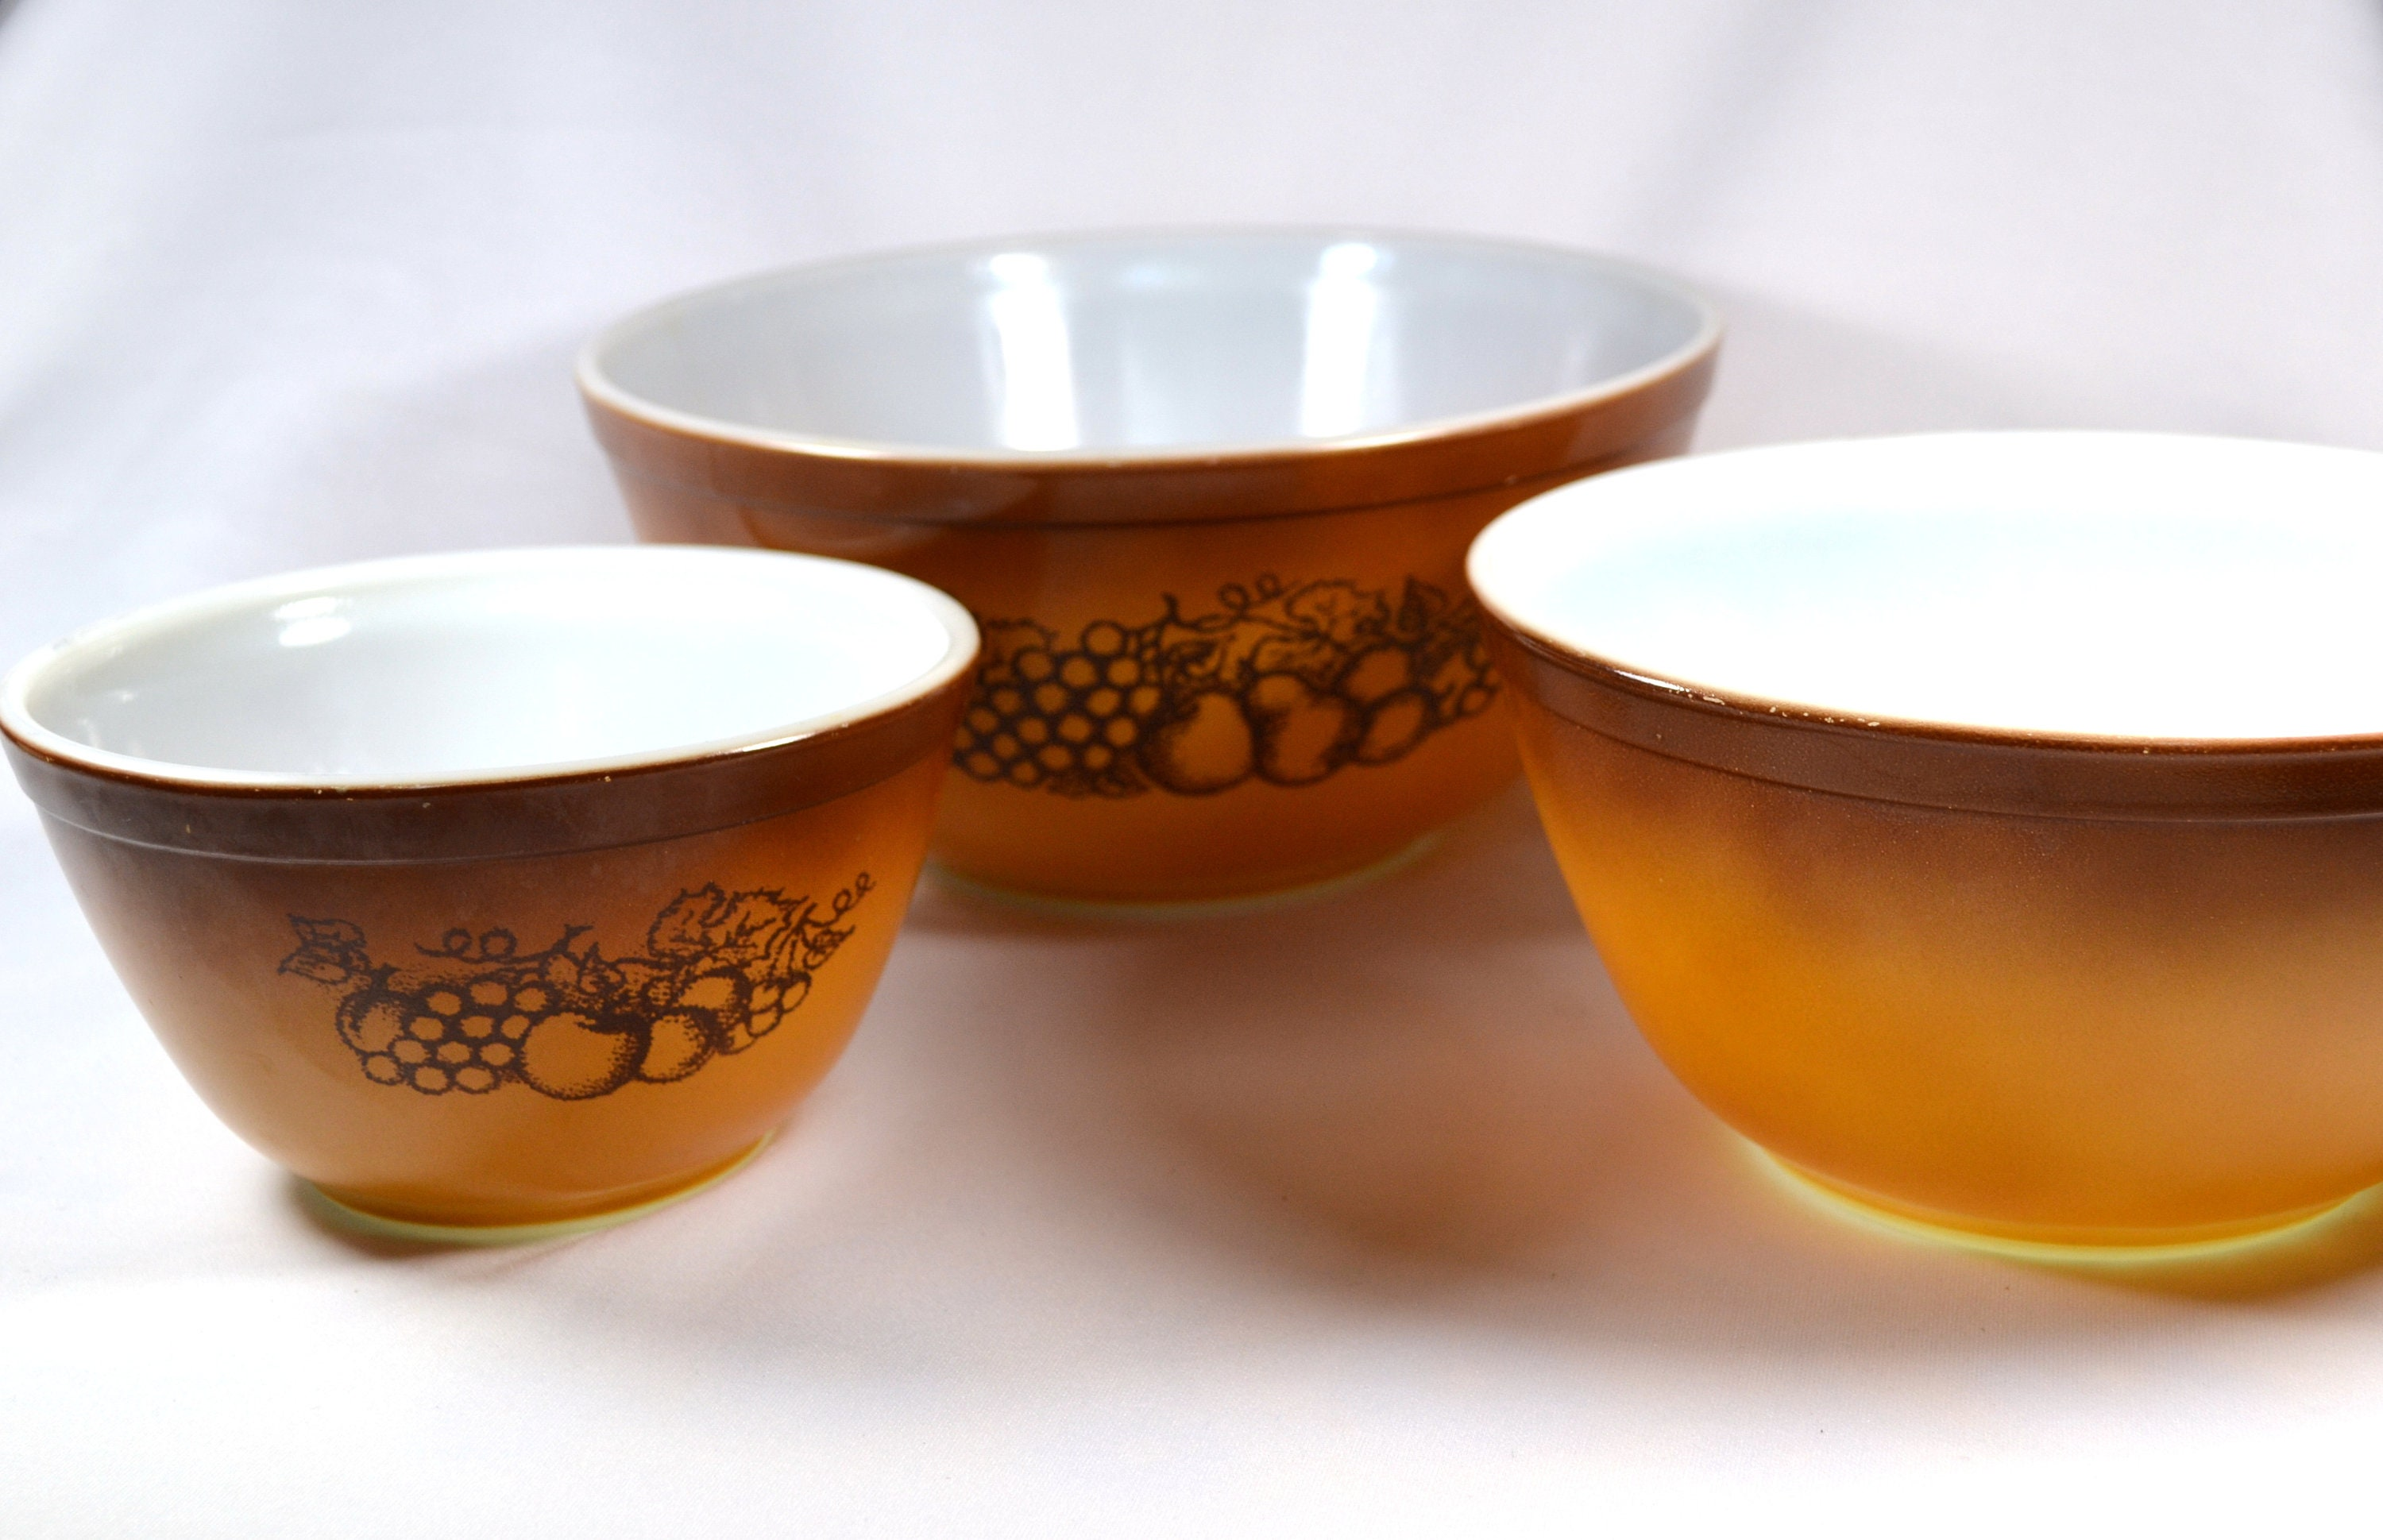 Pyrex Old Orchard Nesting Mixing Bowls, Set of Three, Pyrex 401, 402 ...